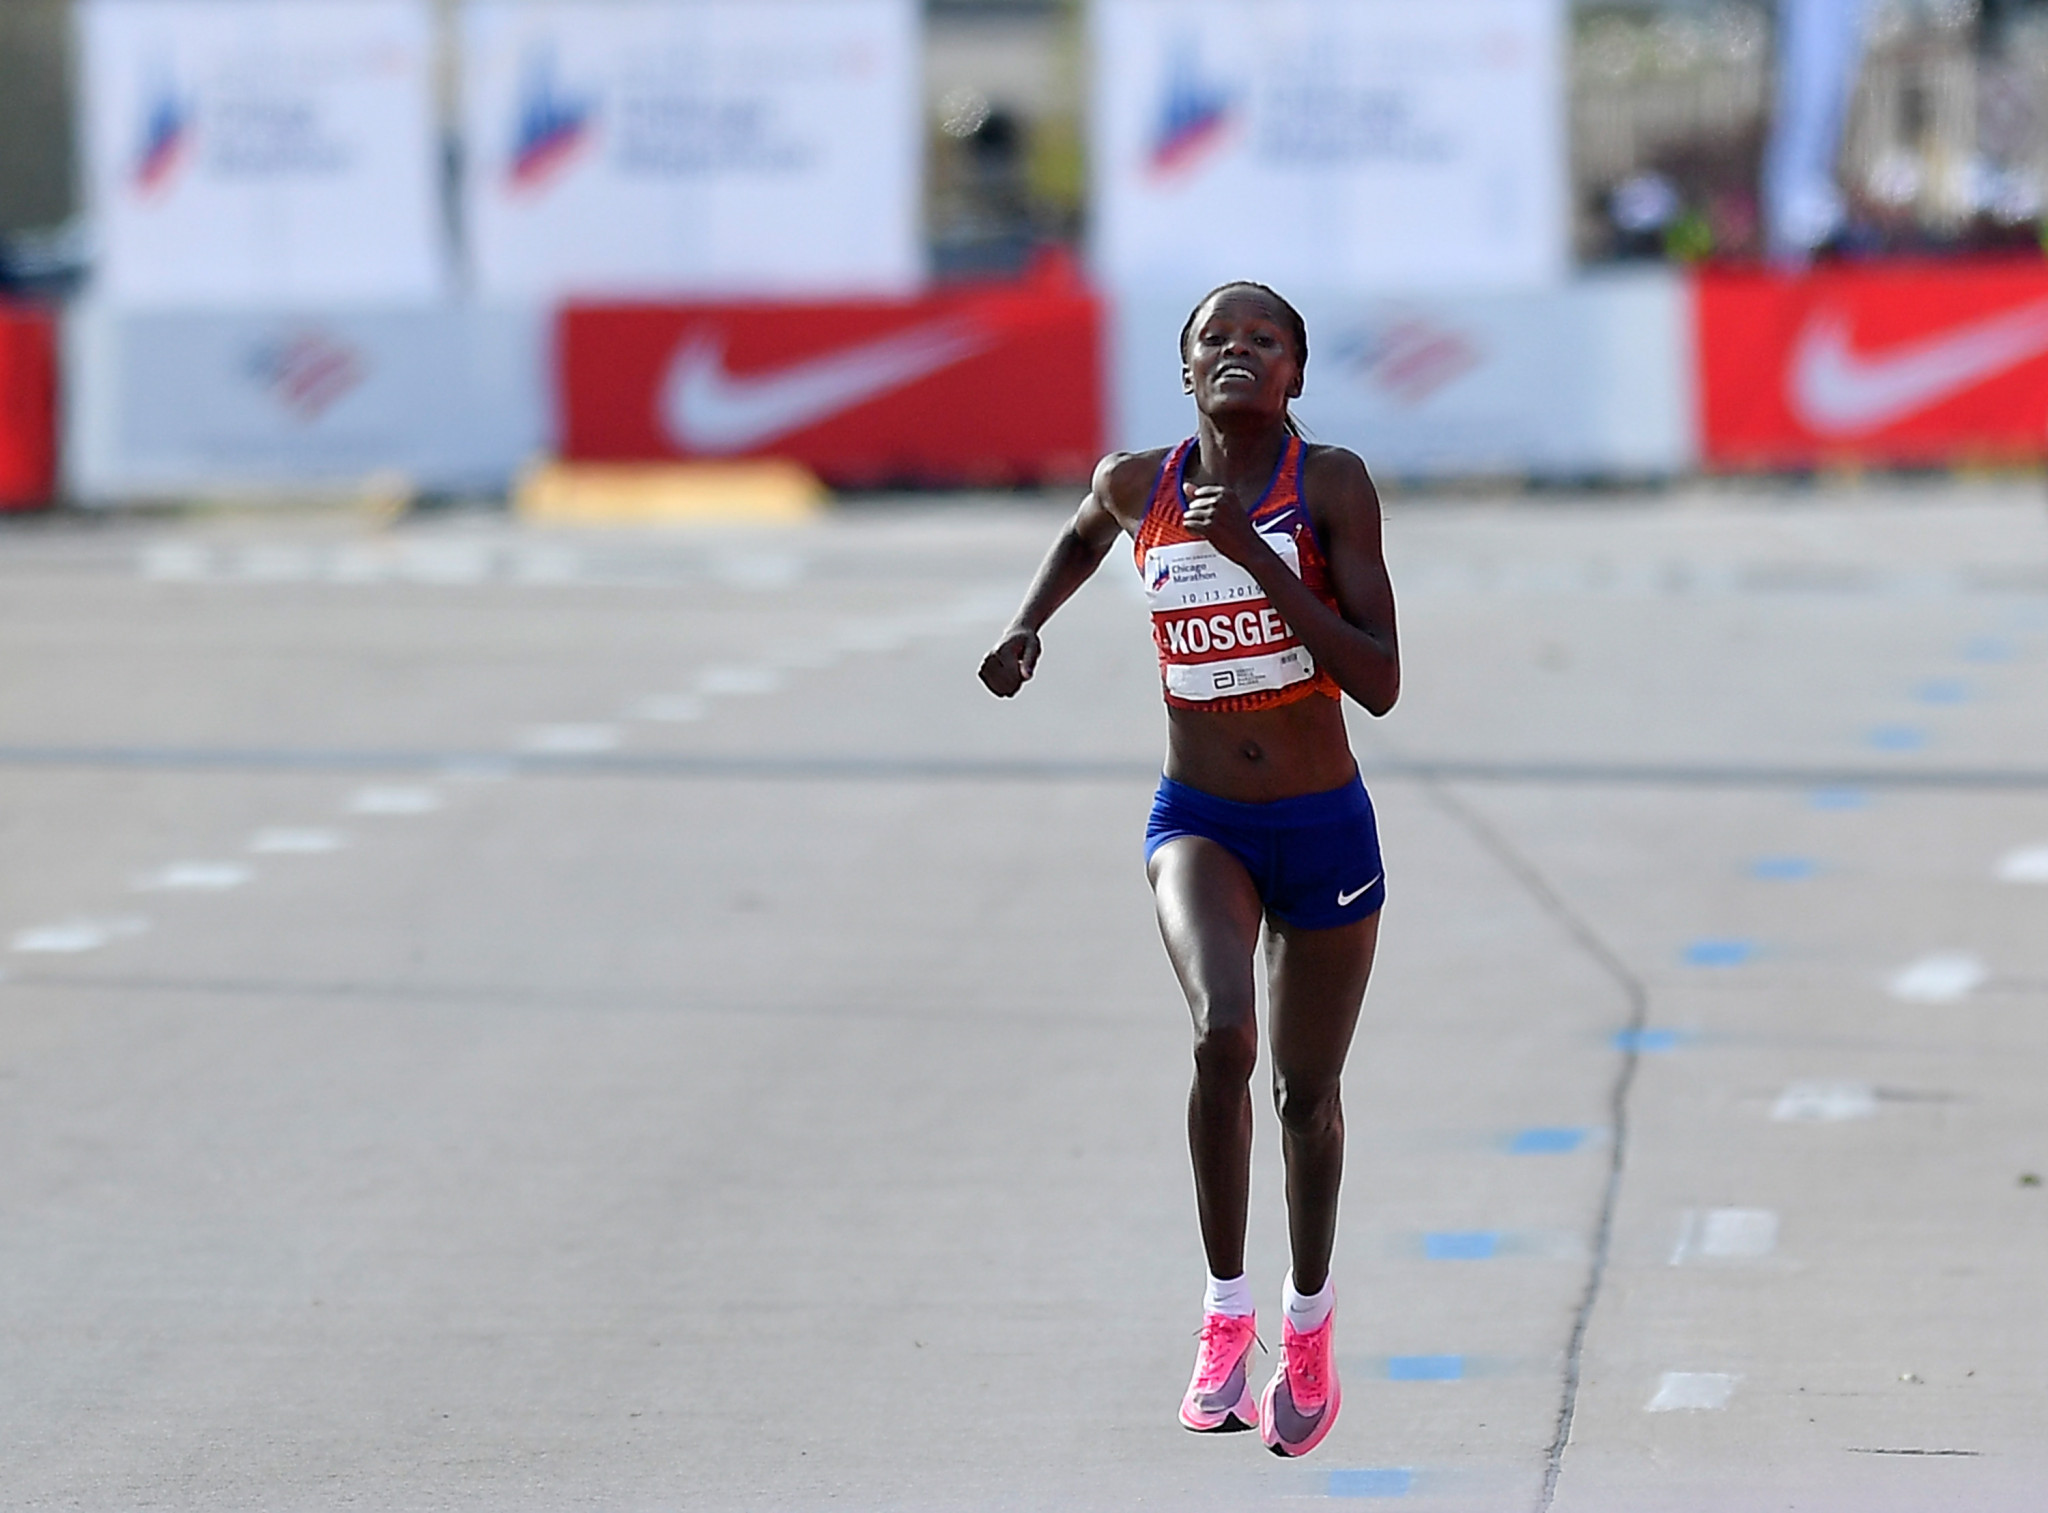 Eliud Kipchoge's countrywoman Brigid Kosgei wore the same Nike model of a shoe in Chicago the day after he ran a sub-two hour marathon to break Paula Radcliffe's 16-year-old world record ©Getty Images